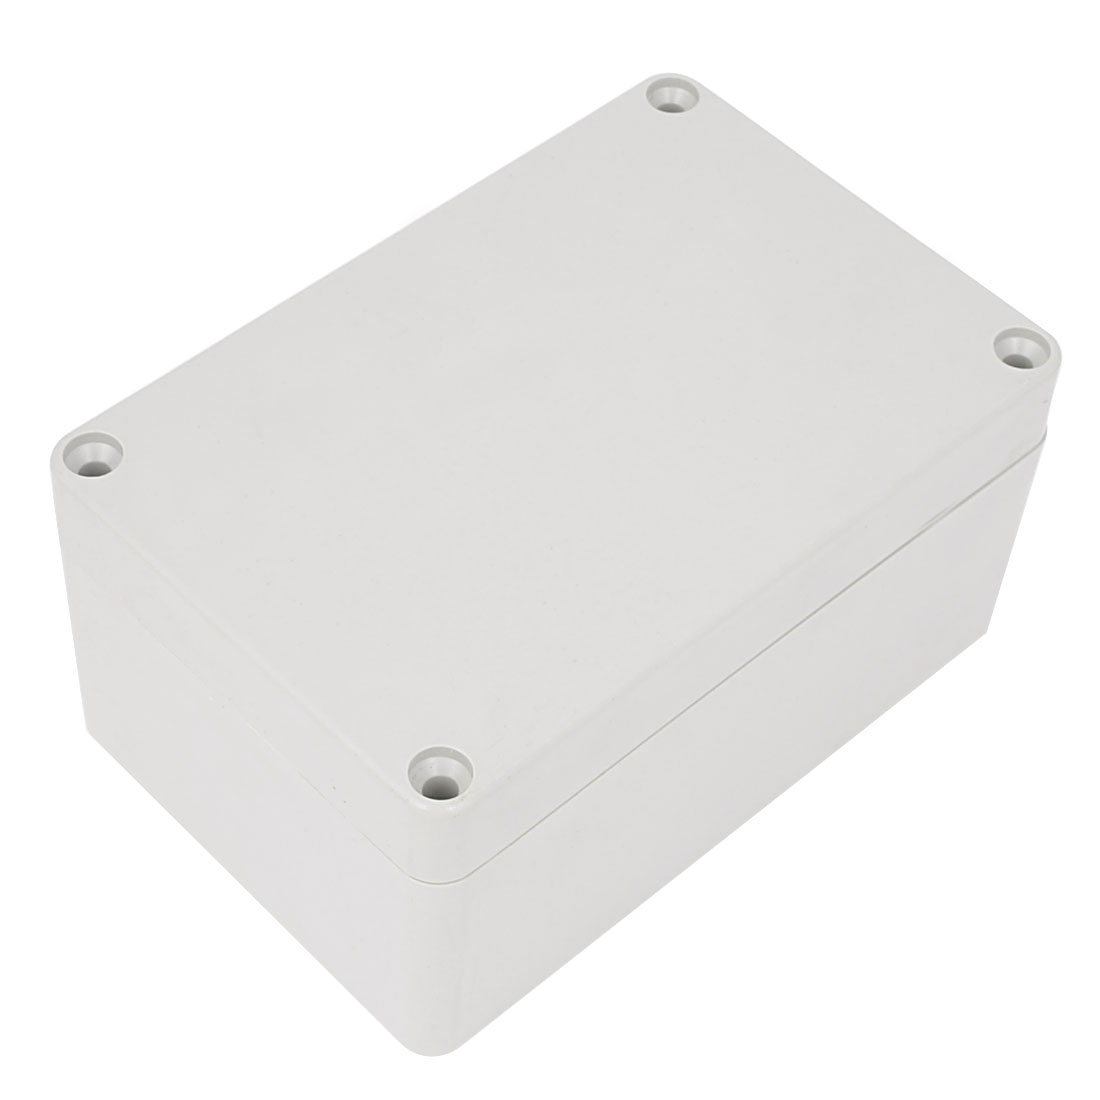 Plastic Sealed Enclosure Case Junction Box 120 x 80 x 60mm